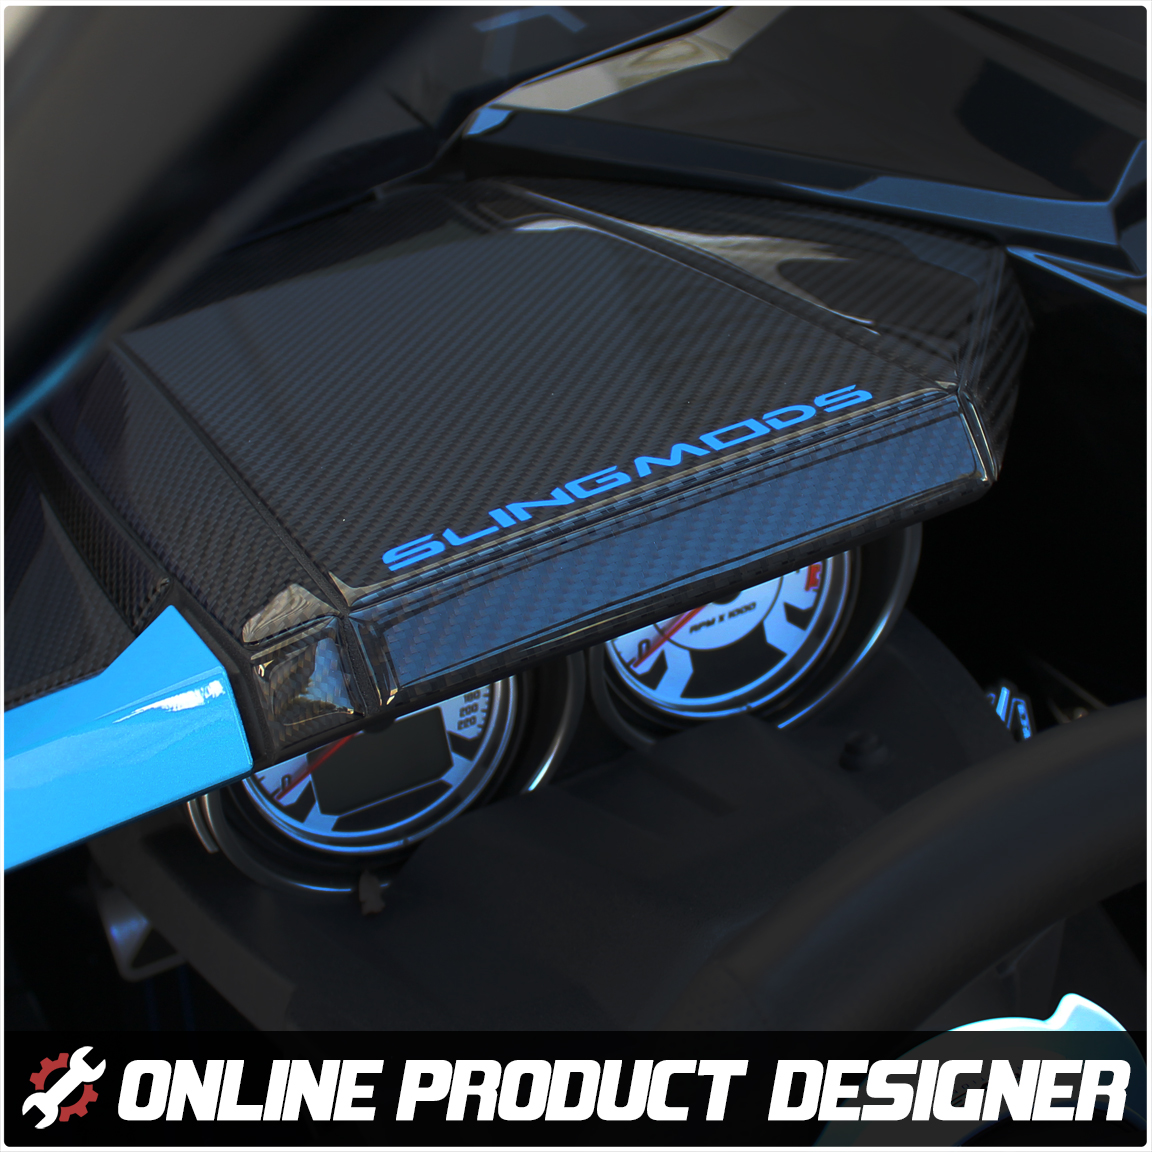 Tufskinz Dashboard Cover with Optional Text Field for the Polaris Slingshot (Ver 2.0) (16 Piece Kit)